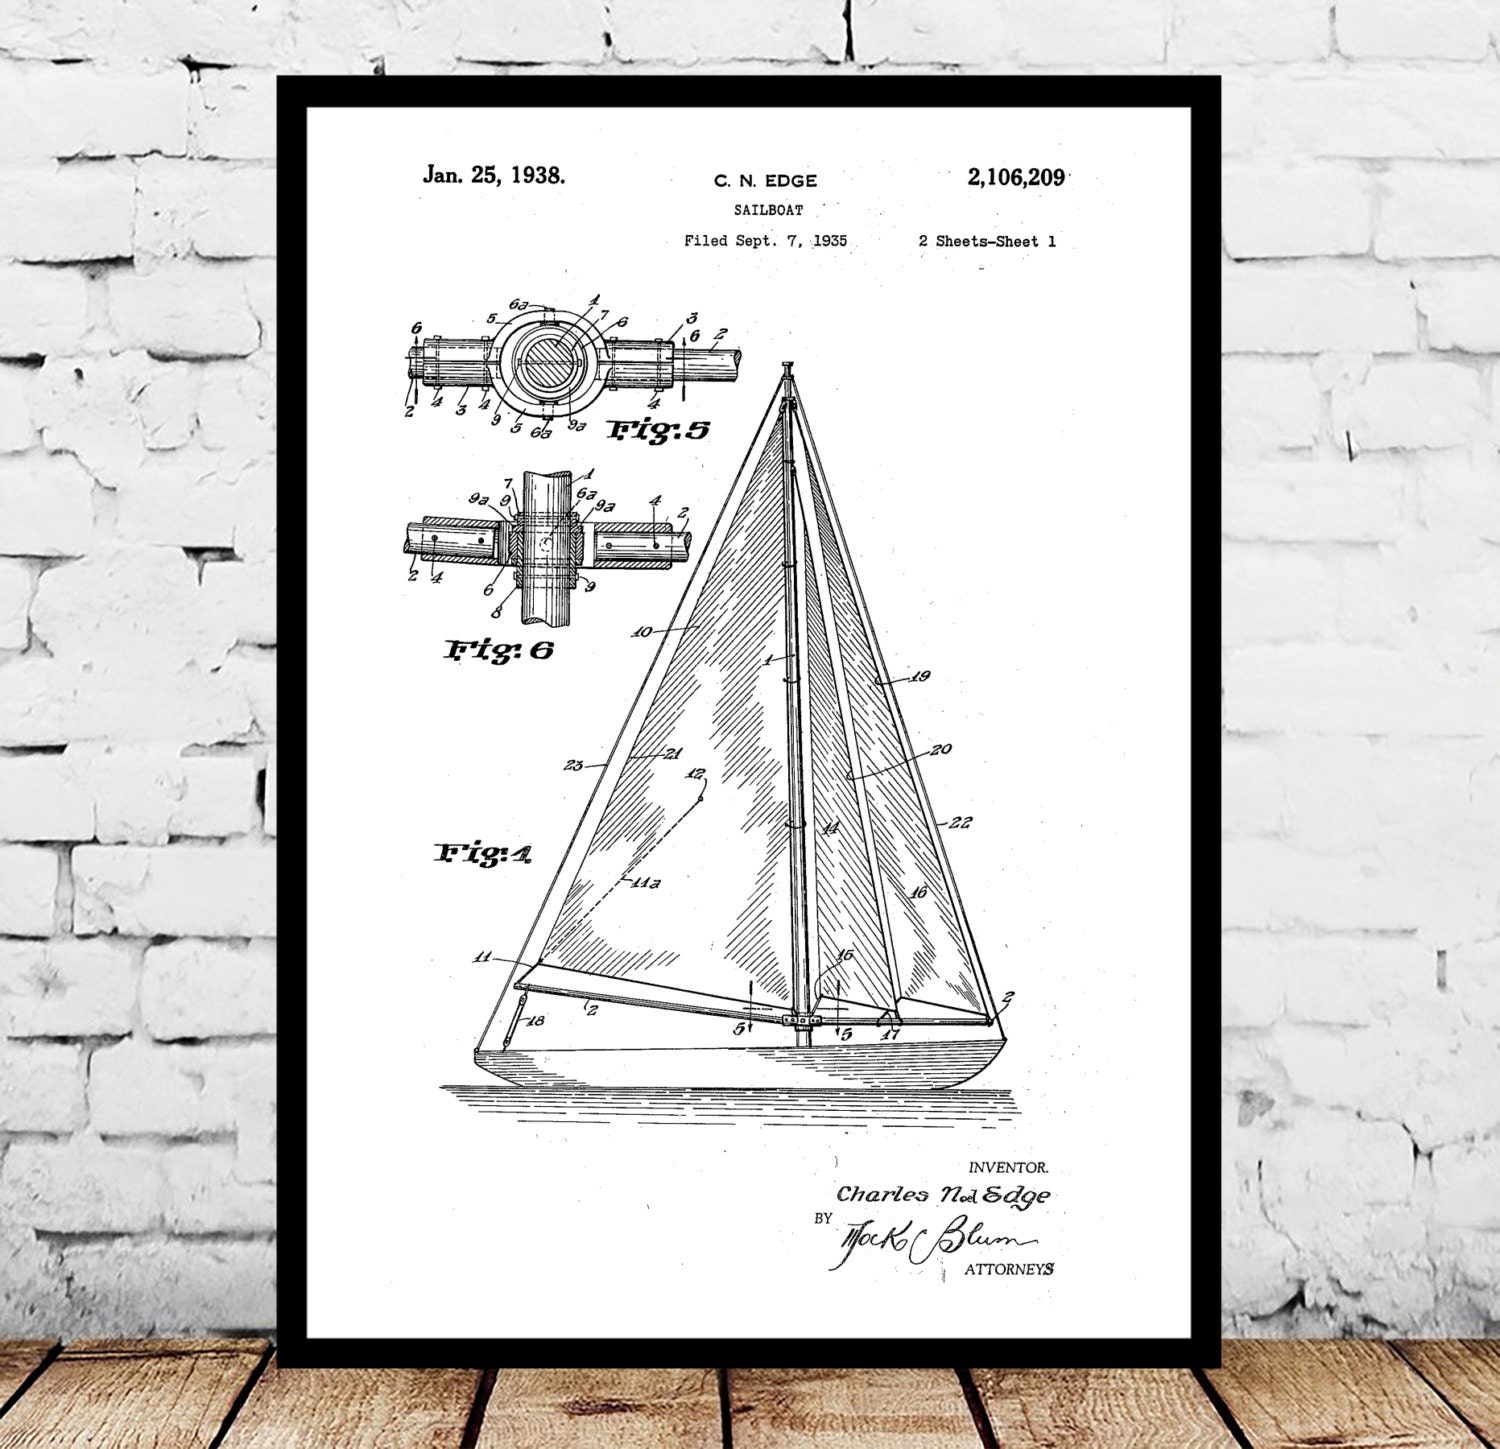 Sailboat print sailboat poster sailboat patent sailboat decor sailboat print sailboat poster sailboat patent sailboat decor sailboat art sailboat wall art sailboat blueprint nautical design malvernweather